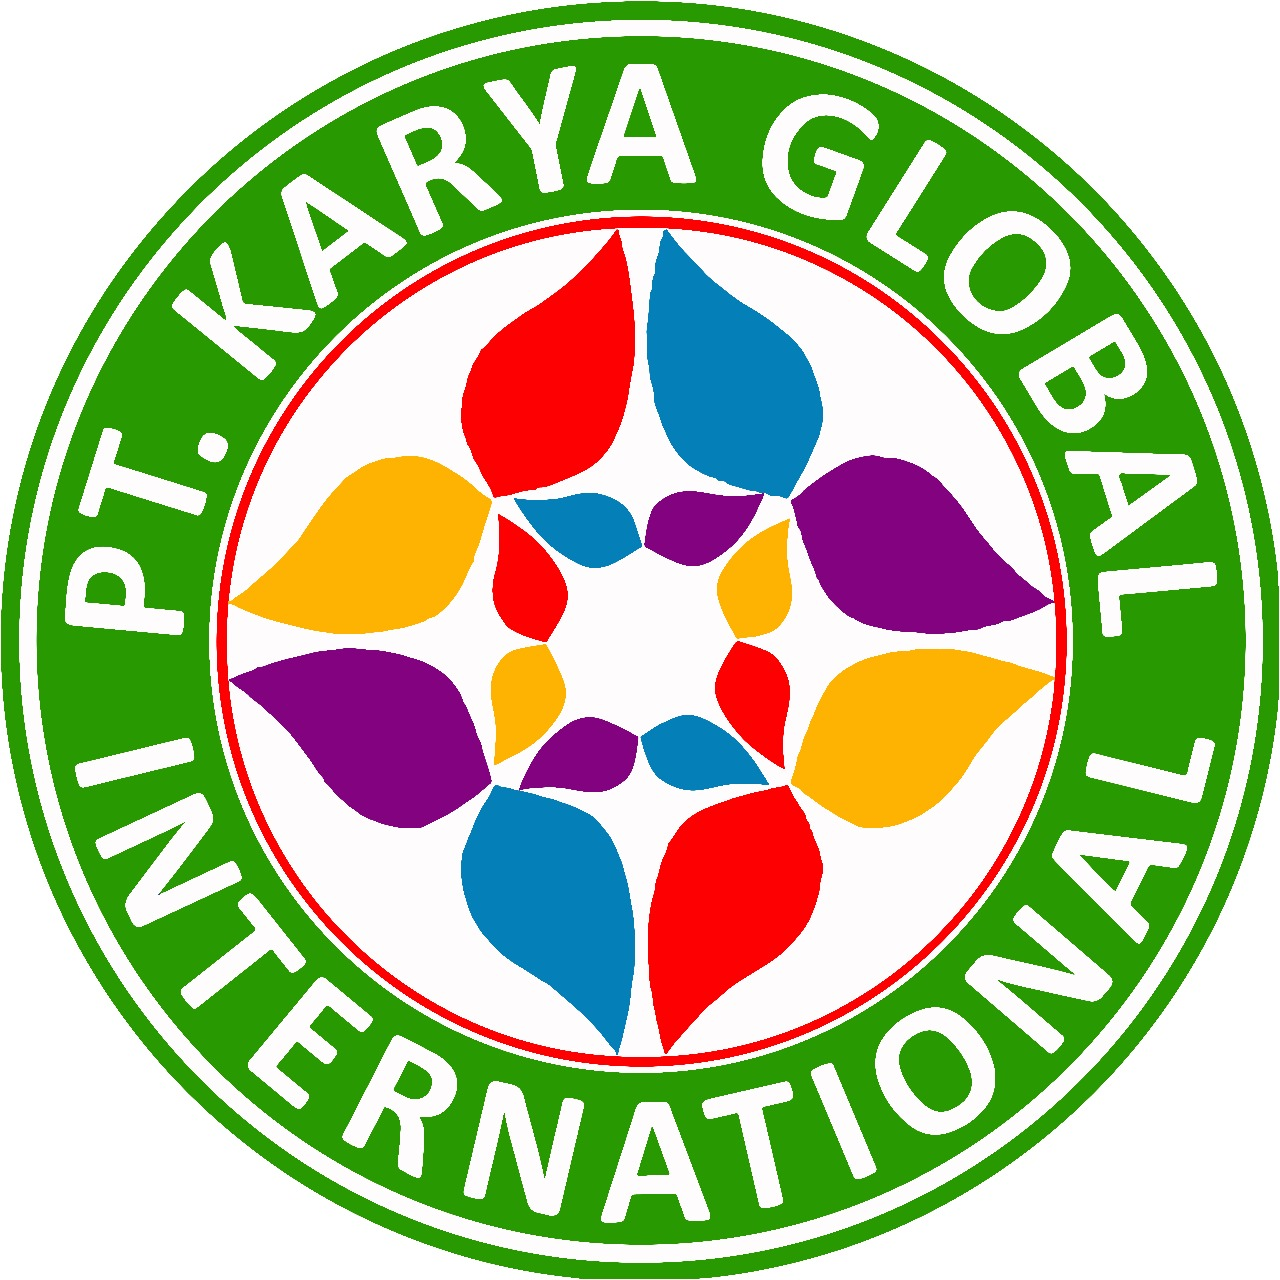 Karya Global International PT